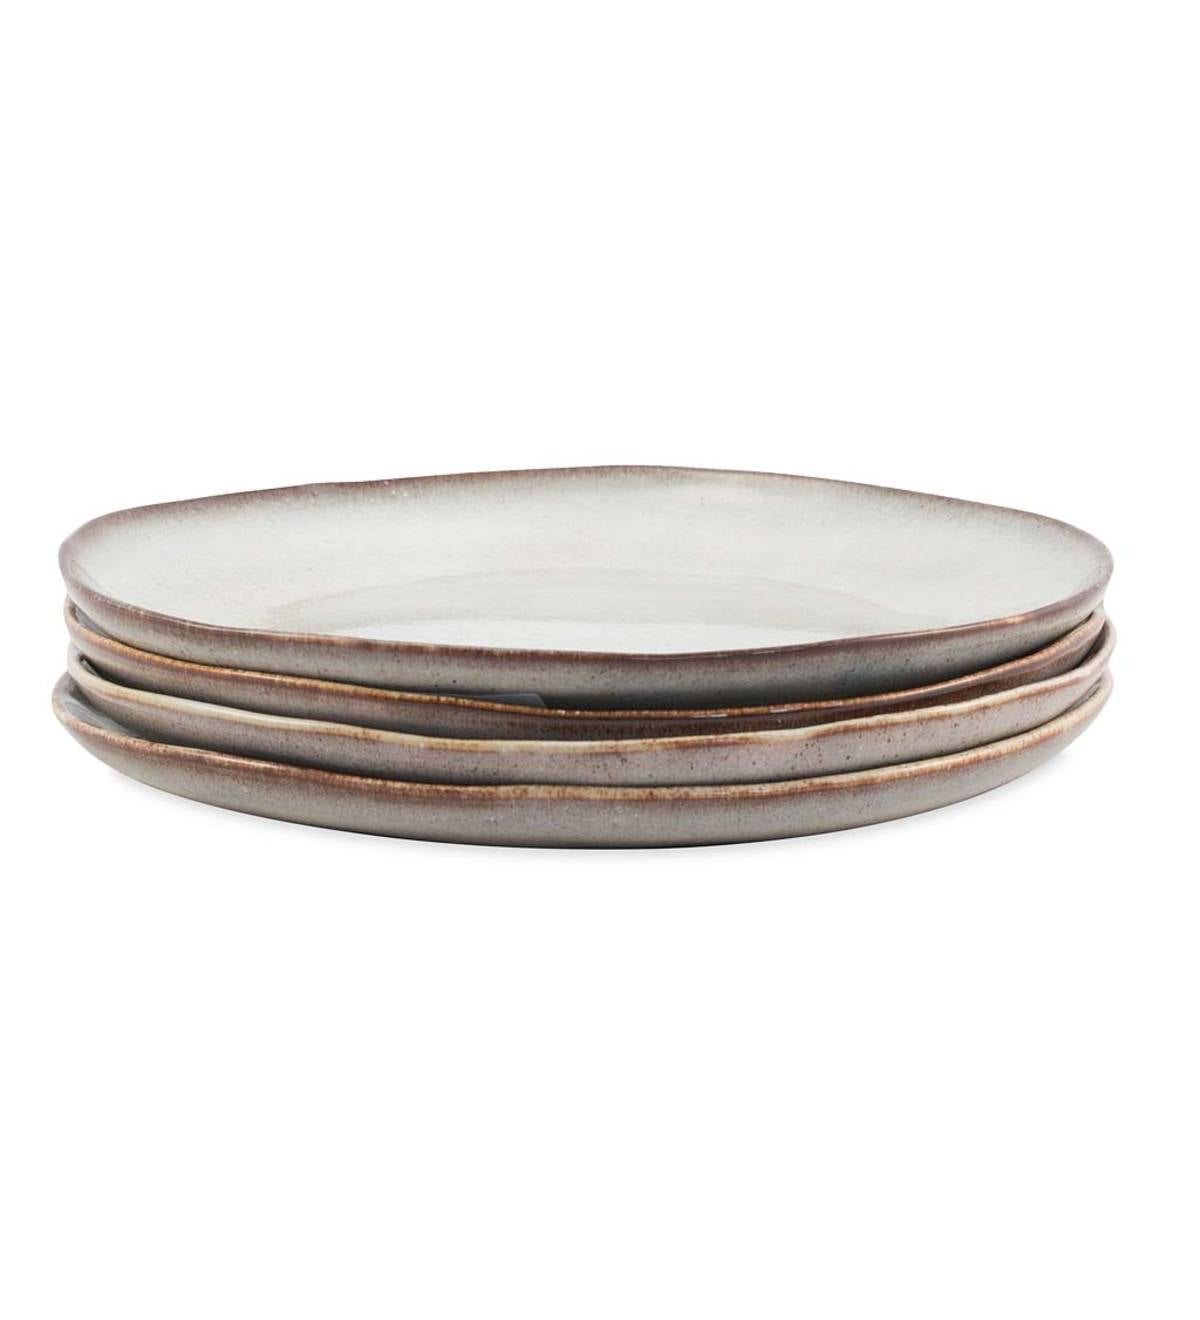 "Farmstead 11"" Stoneware Dinner Plates, Set of 4 - Bisque"